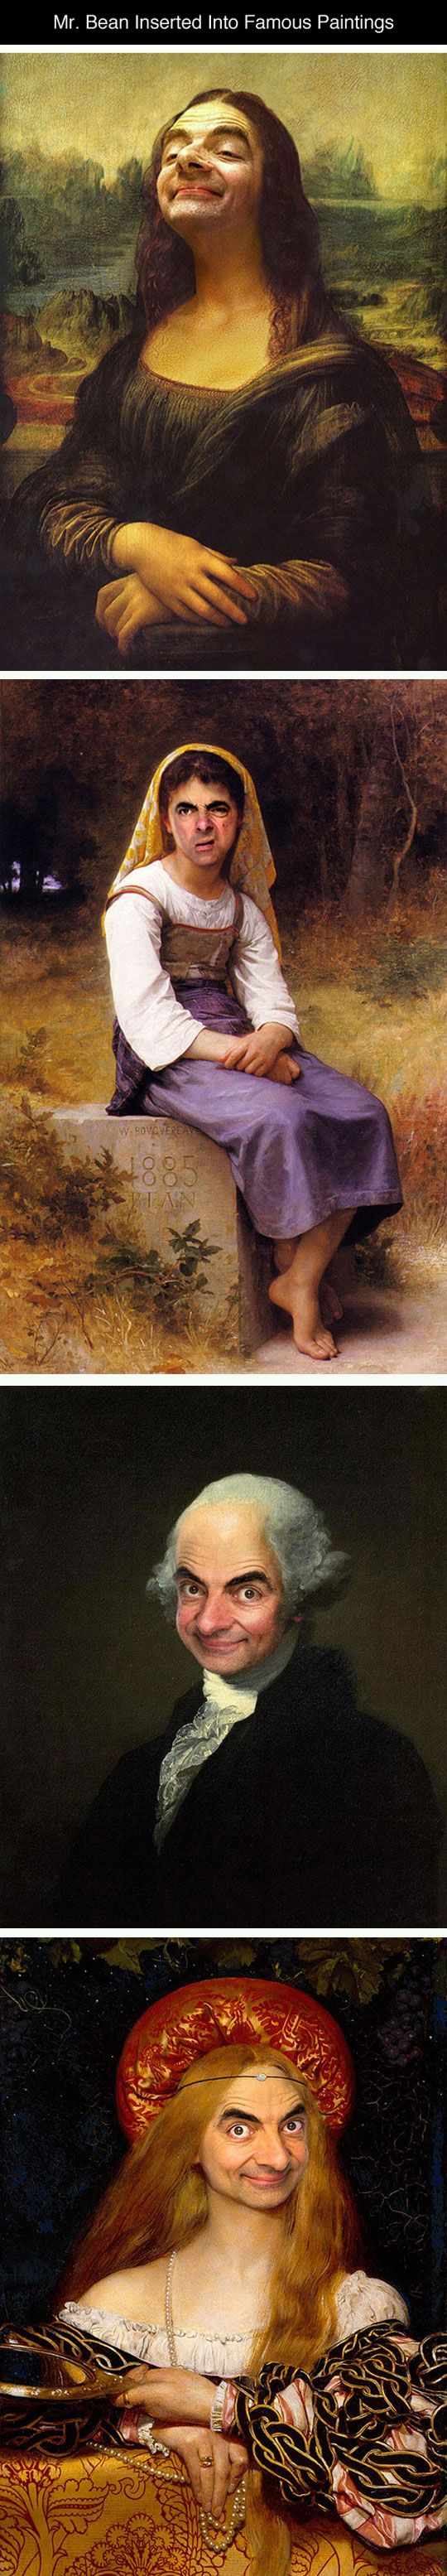 Mr. Bean Inserted Into Famous Portrait Paintings